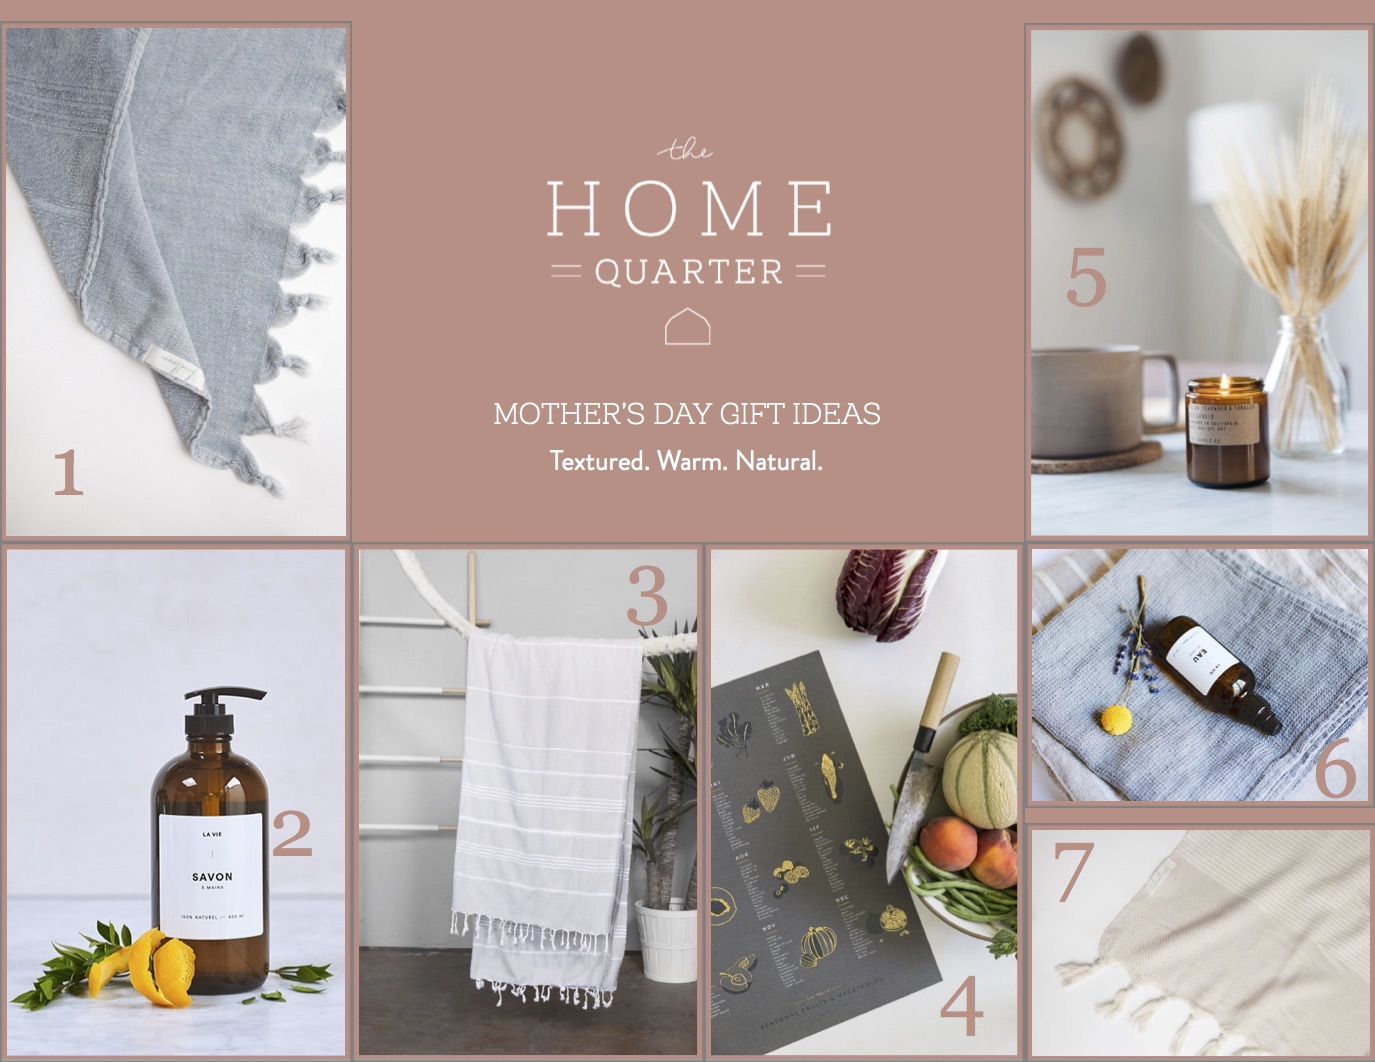 The Home Quarter's Mother's Day gift guide